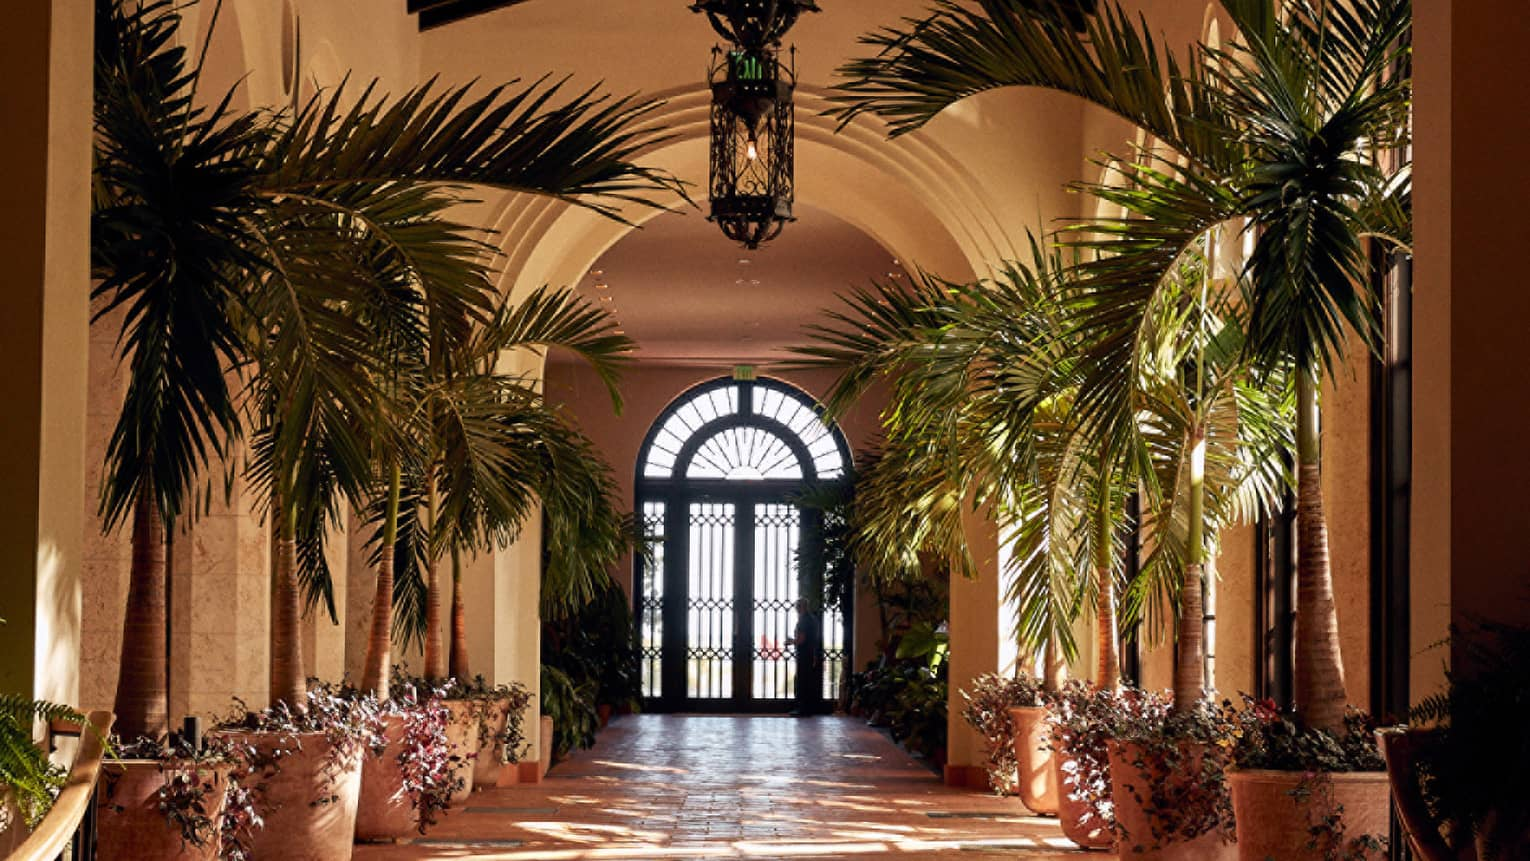 Hotel corridor flanked on either side by potted palms, French doors at the far end